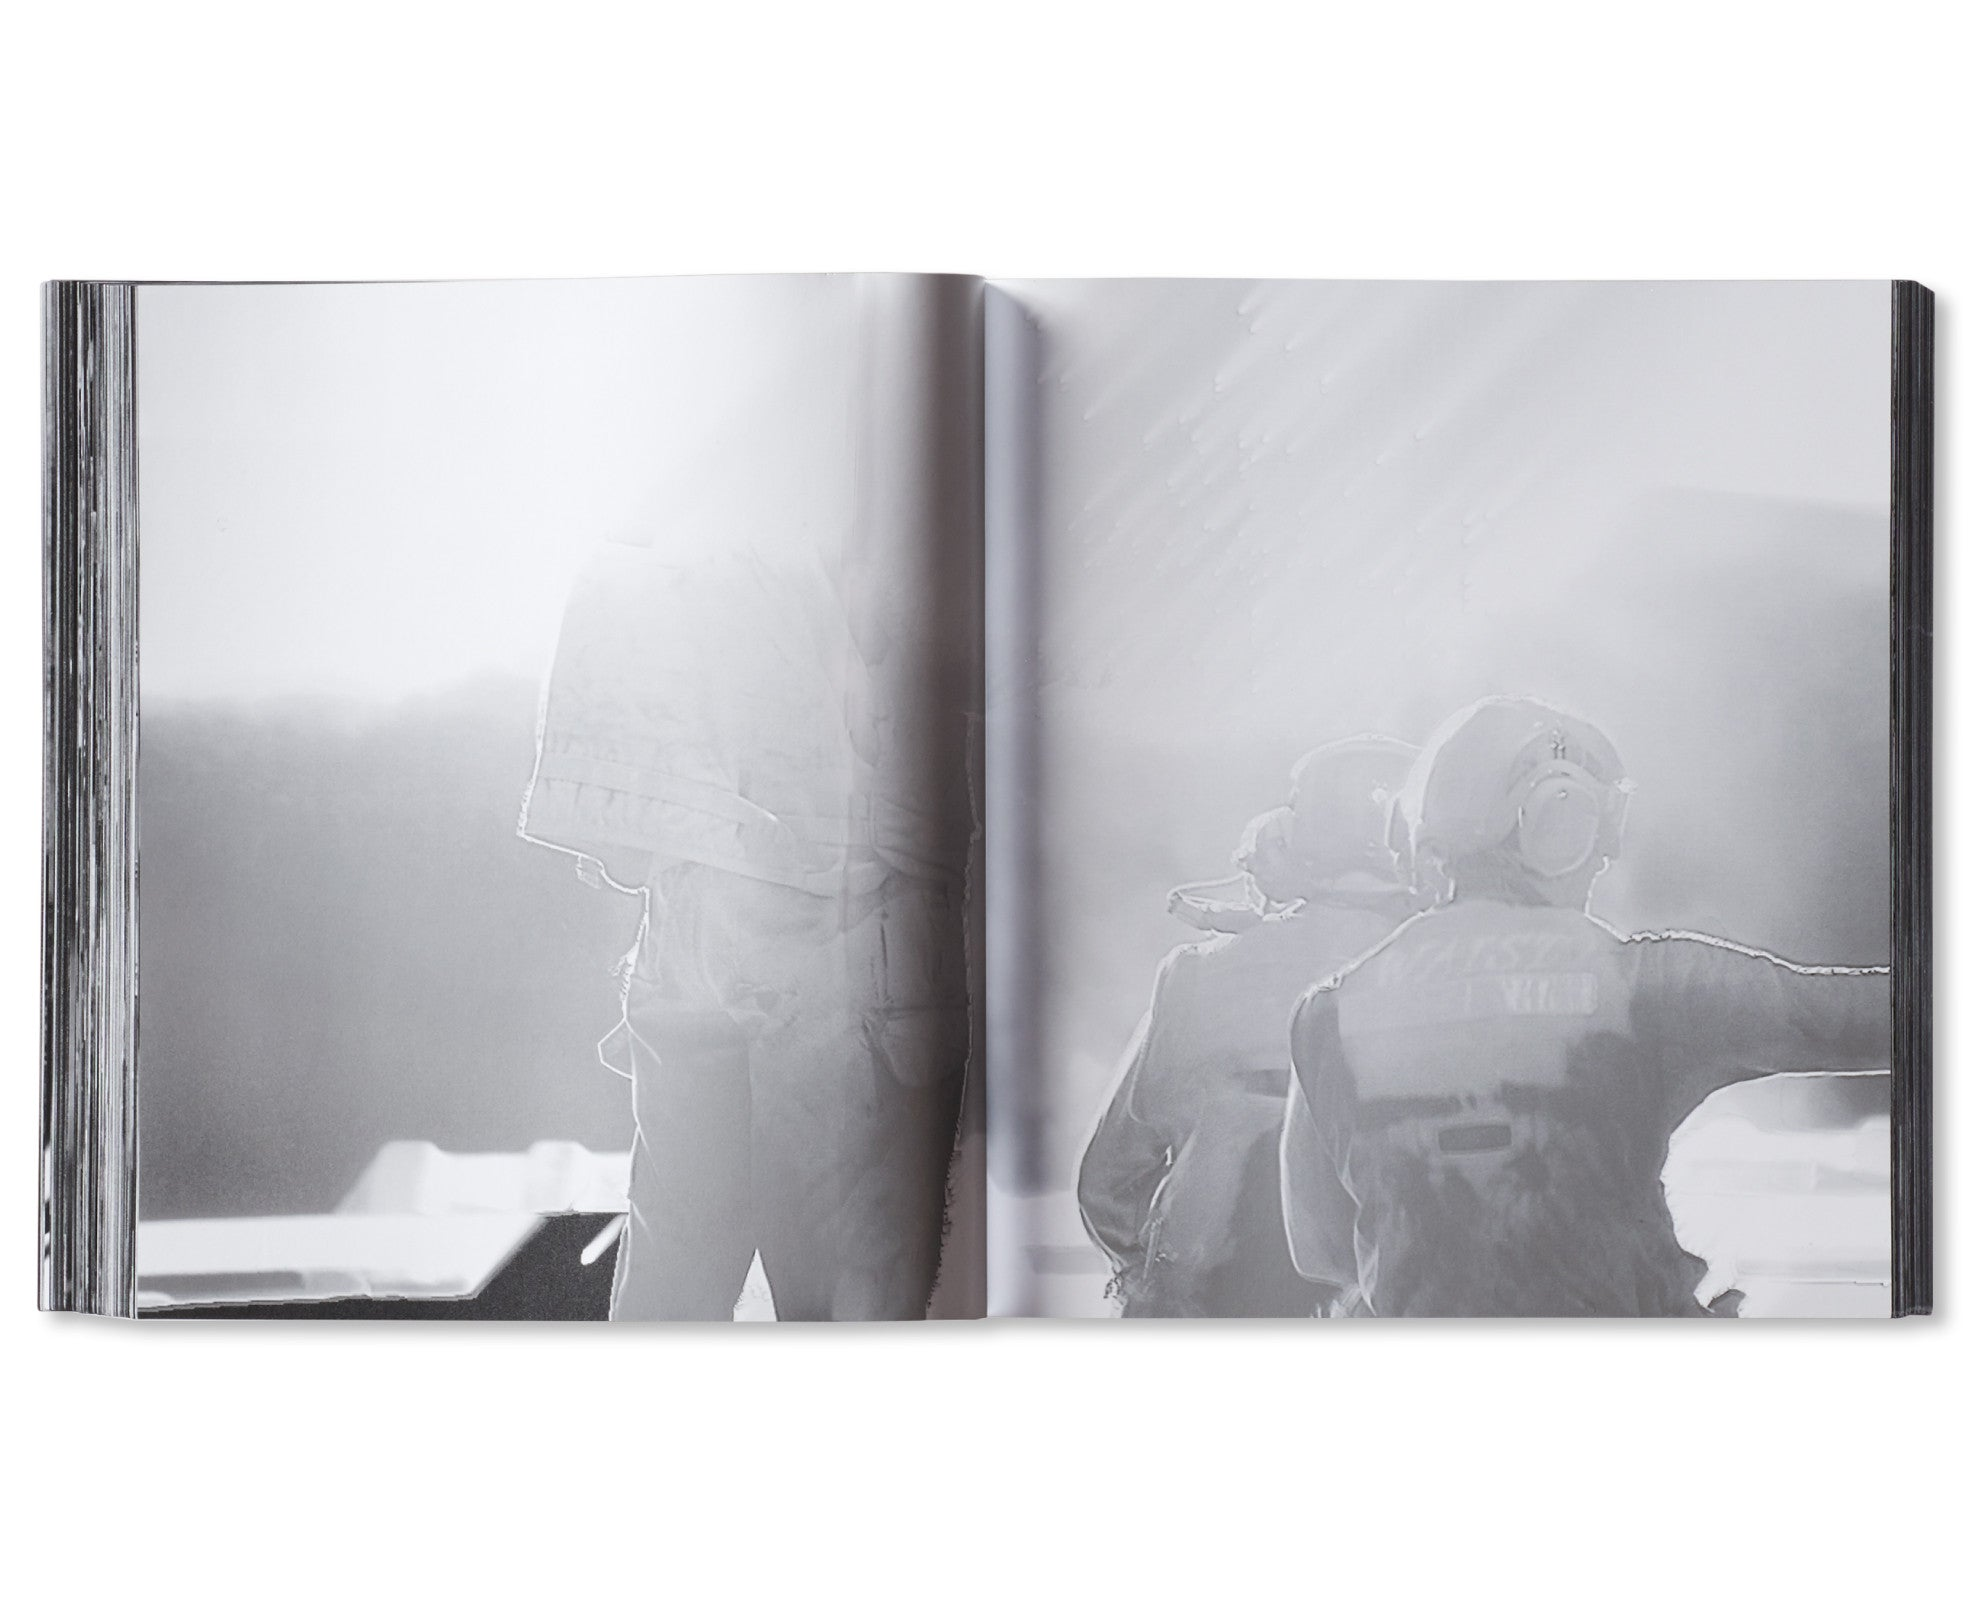 INCOMING by Richard Mosse [SIGNED]